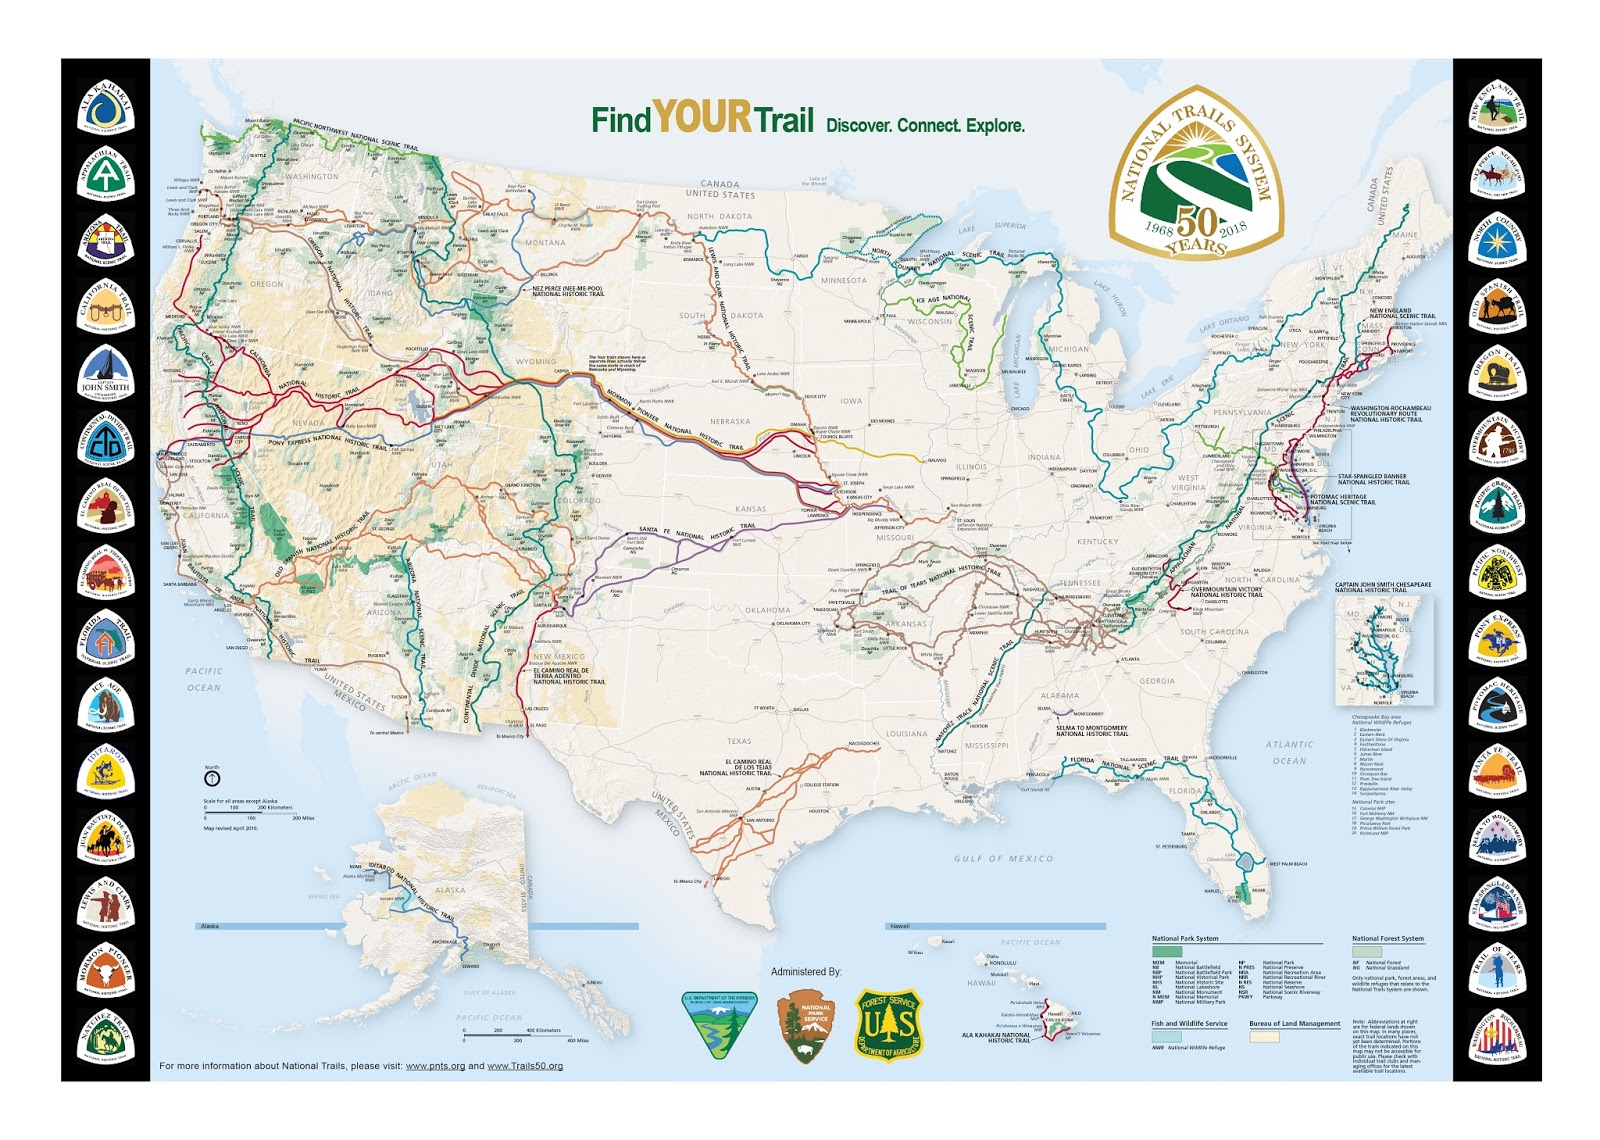 Heart and Sole: The Fifty Trail - Guide to a Trail that Connects the